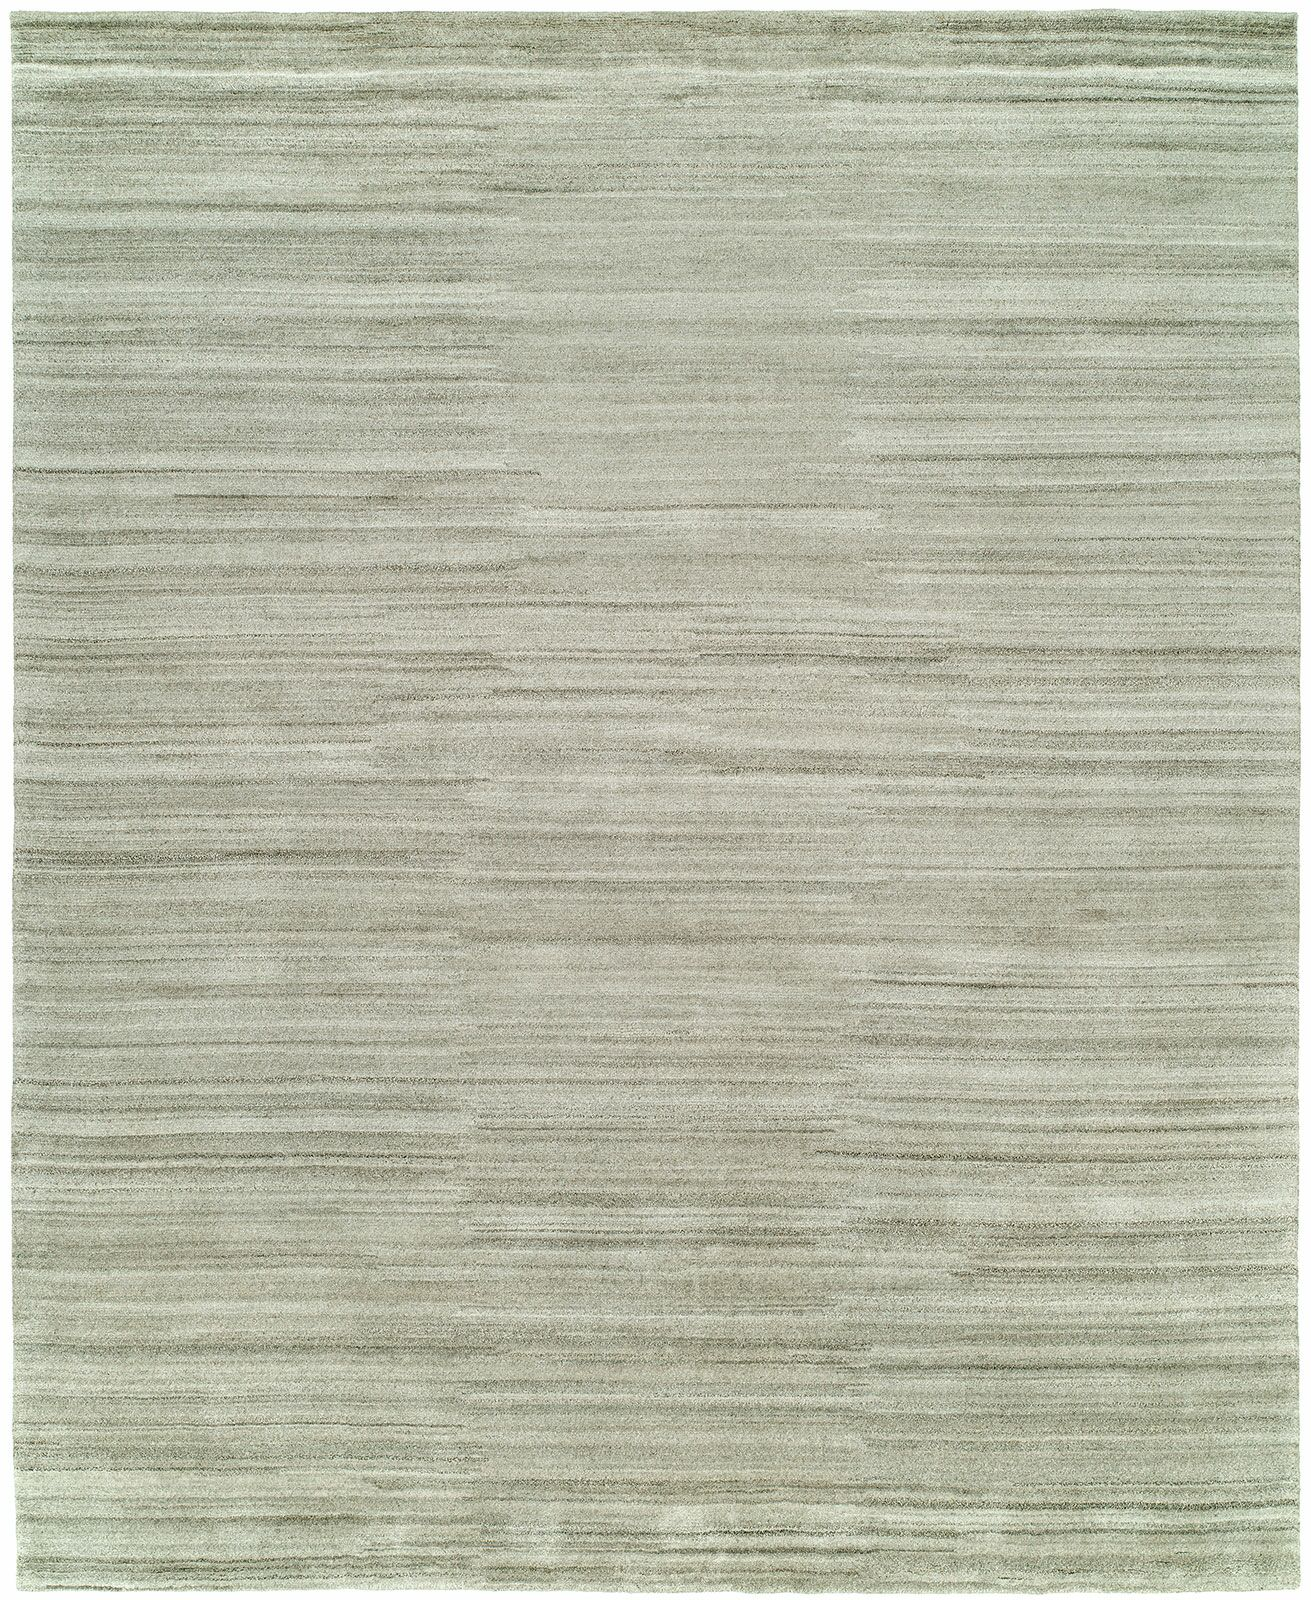 Delaine Hand-Knotted Wool Gray Area Rug Rug Size: Rectangle 3' x 5'